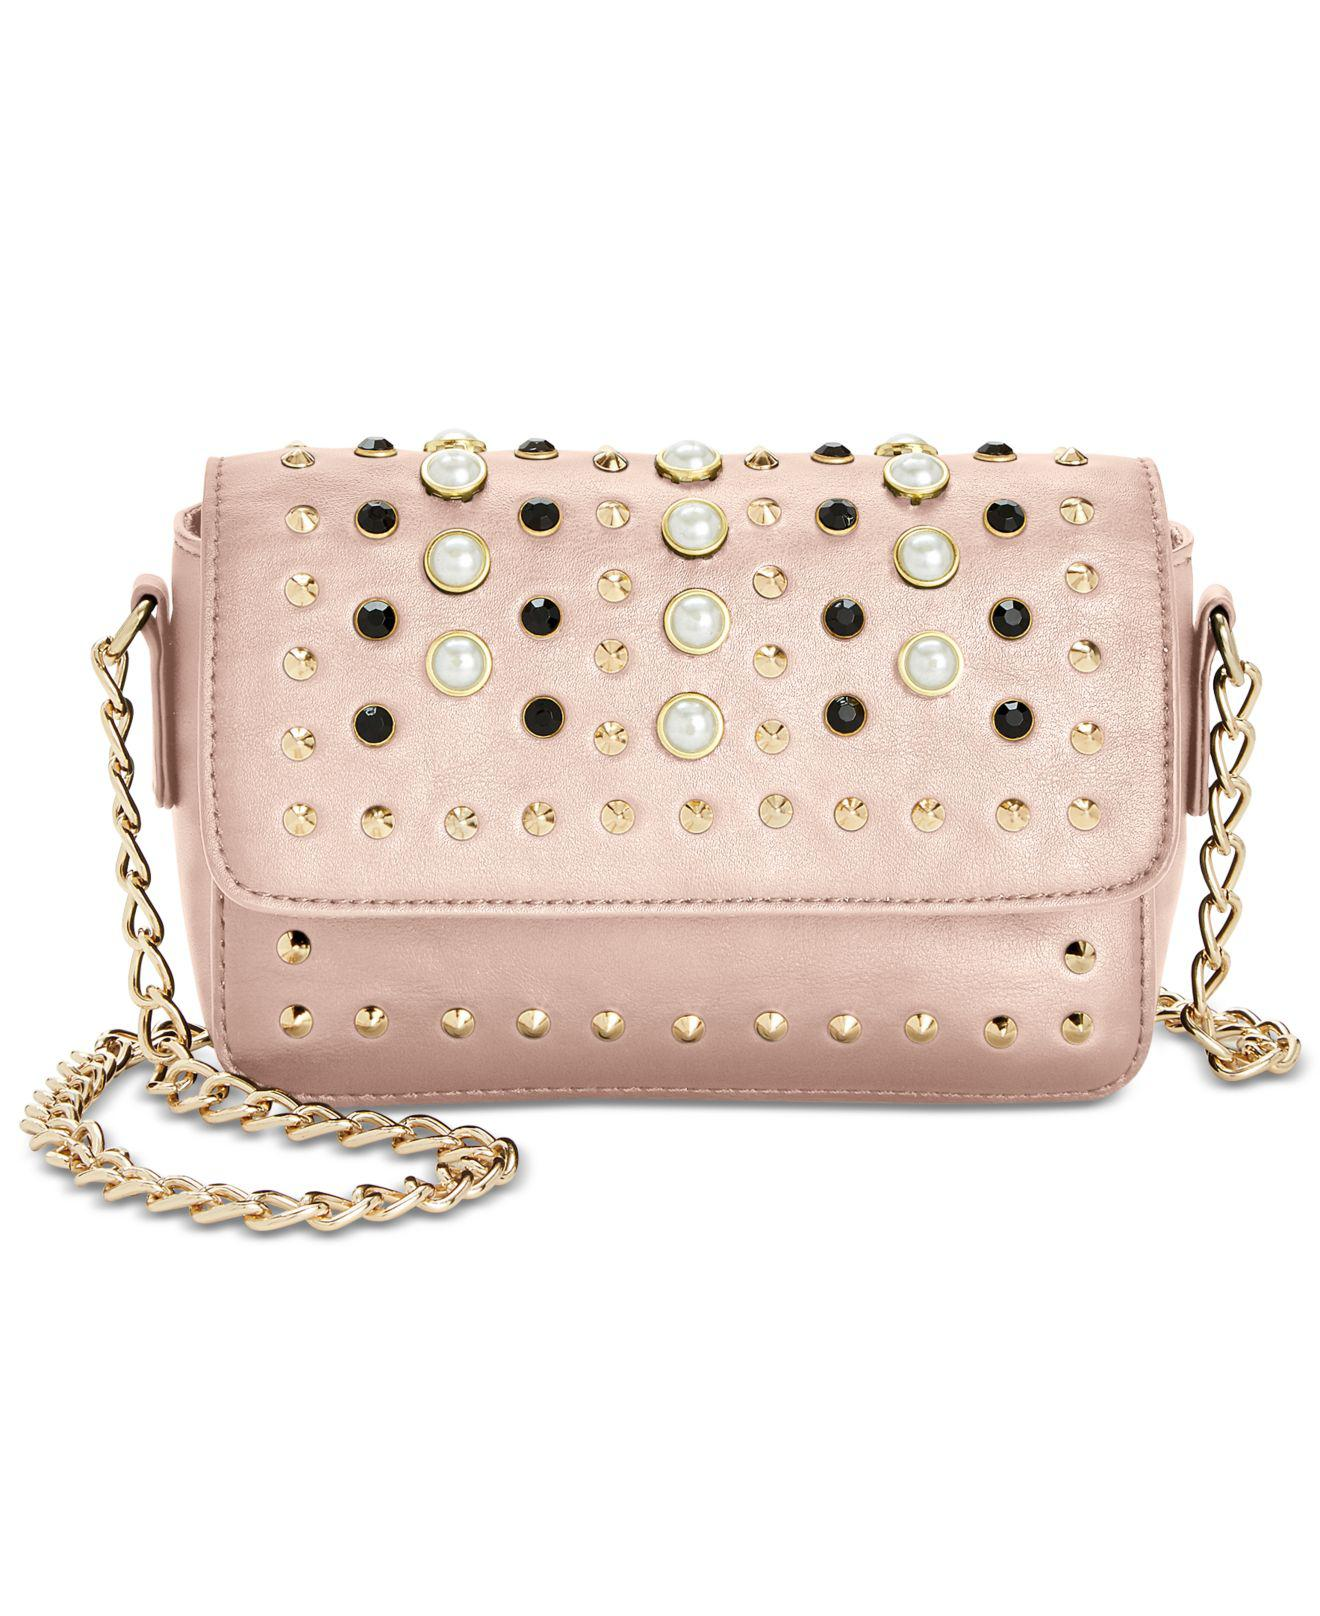 fa48dc43e179fc Lyst - Steve Madden Aiden Embellished Flapover Bag in Pink